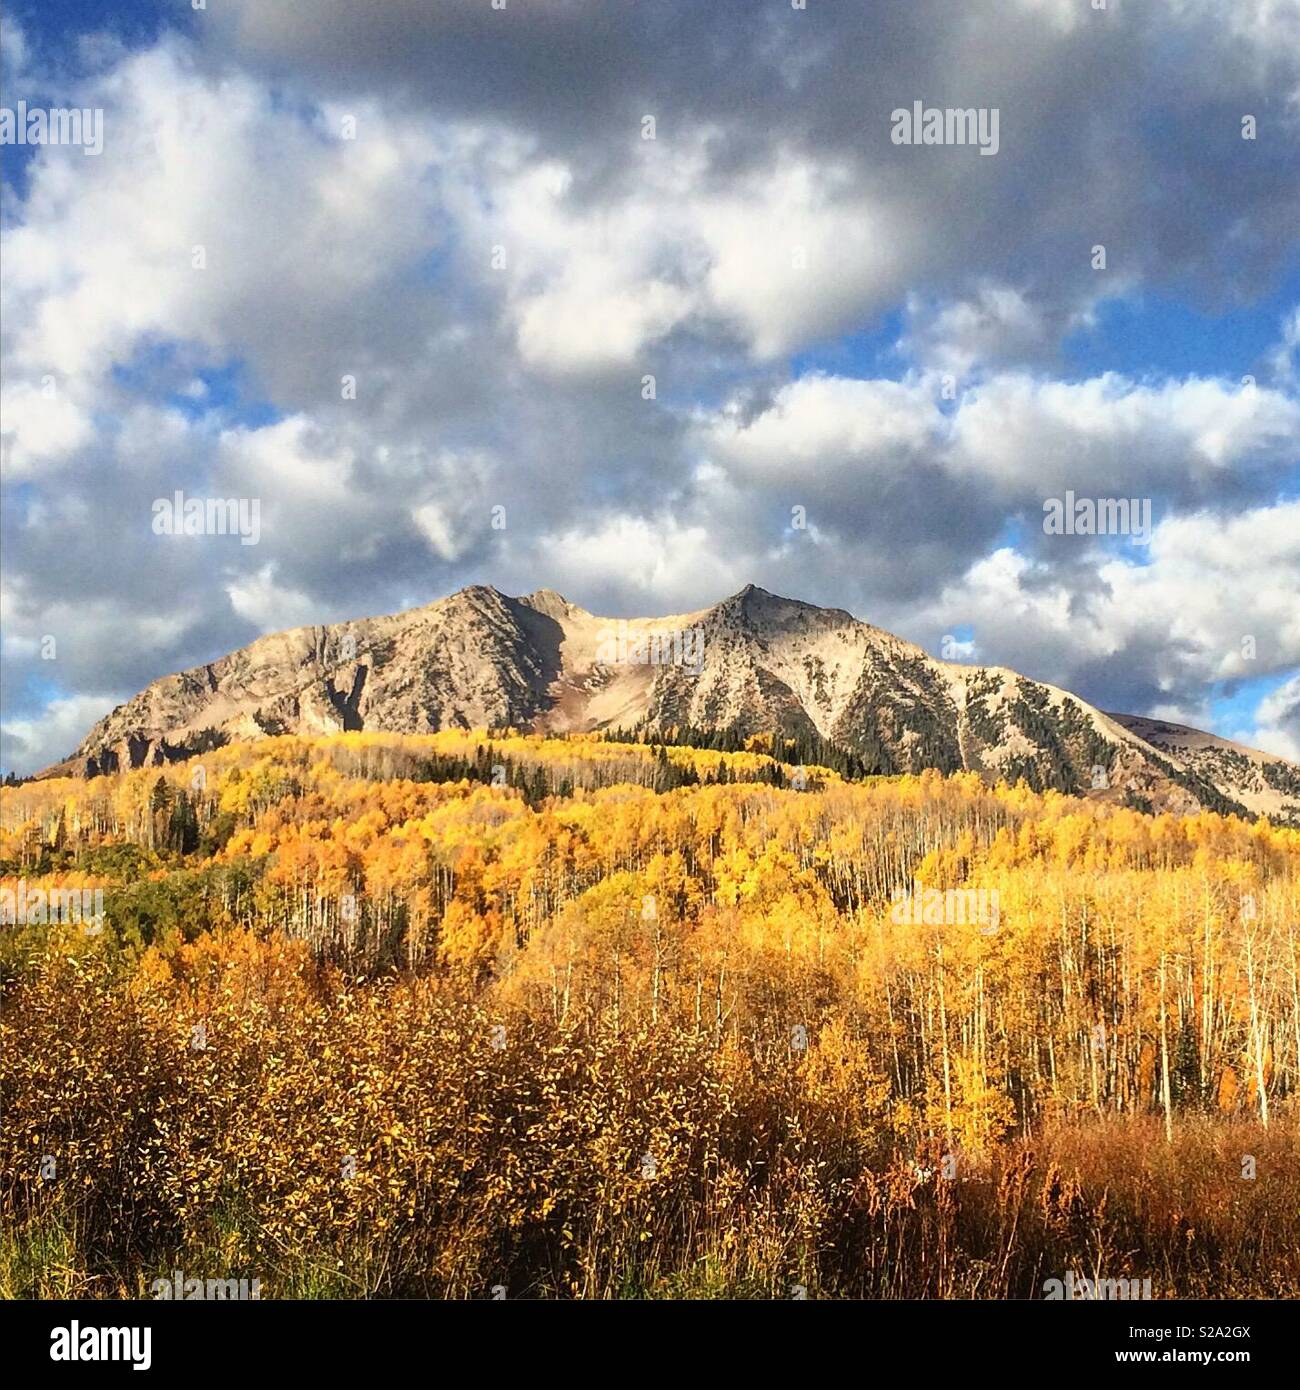 Gunnison mountain in fall with yellow foliage was taken in Gunnison County, Colorado, USA. - Stock Image